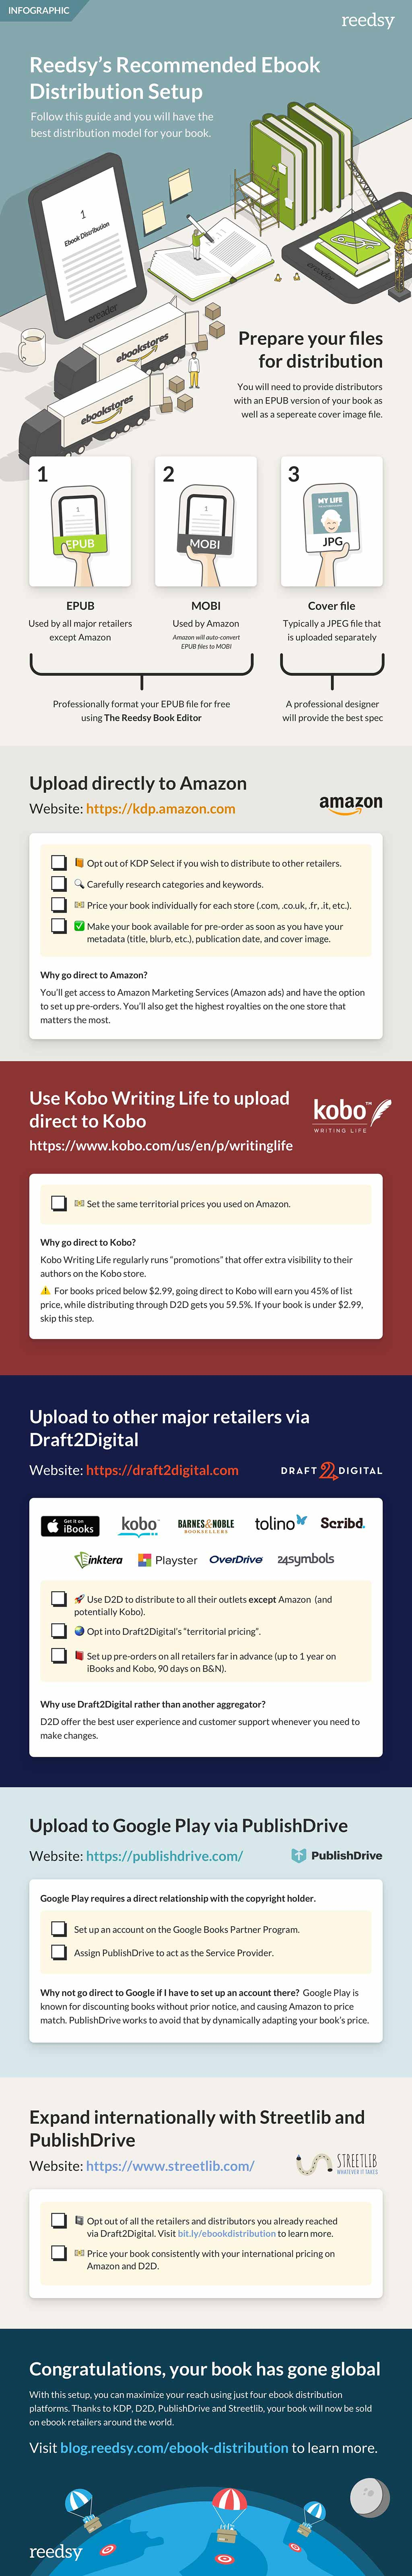 Ebook publishing platforms infographic